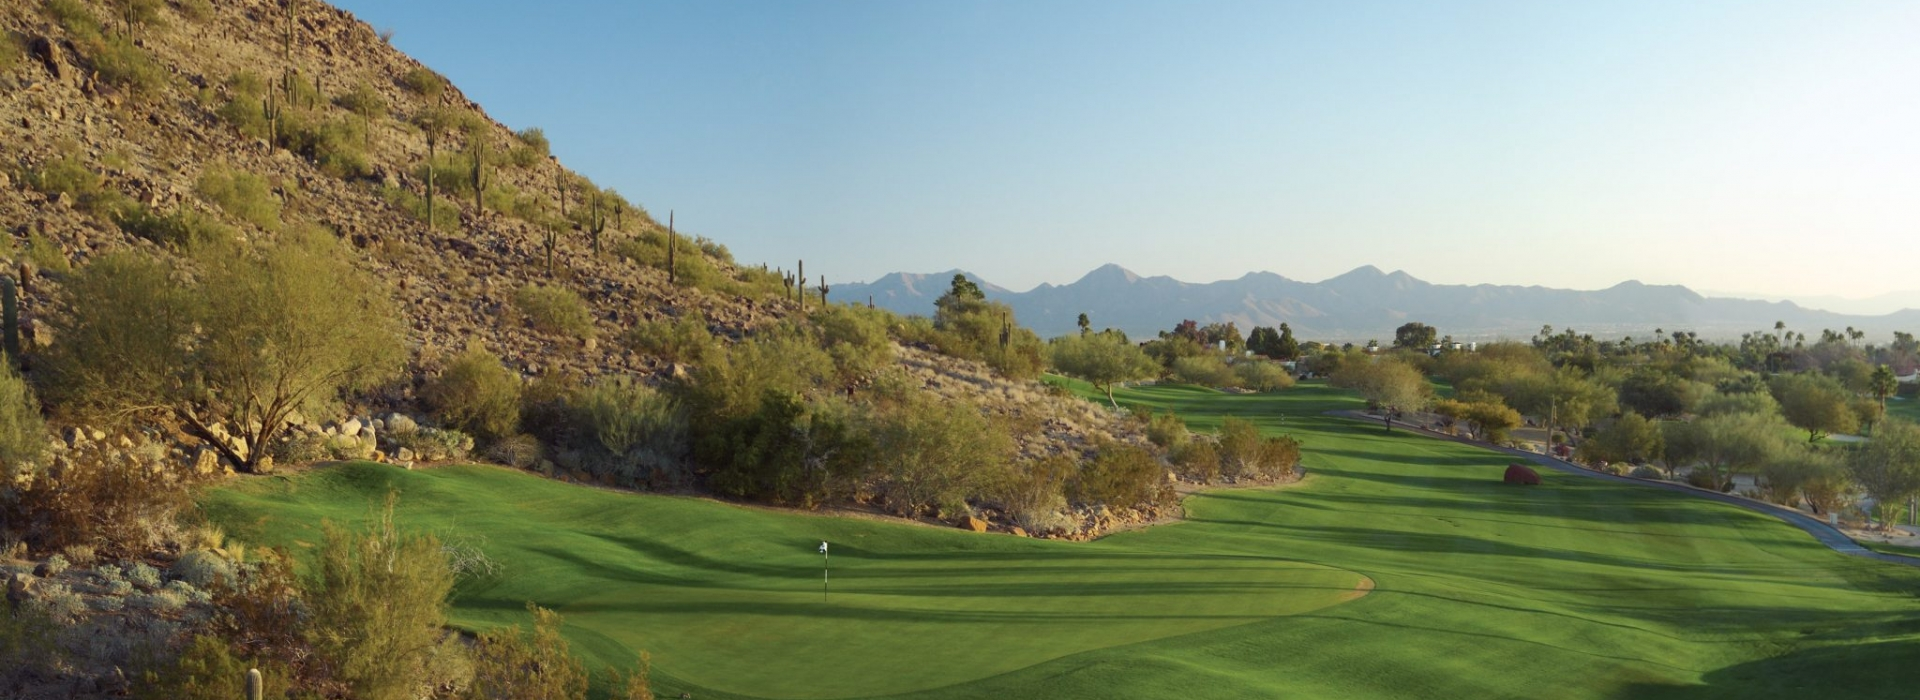 The Phoenician Desert Course #7